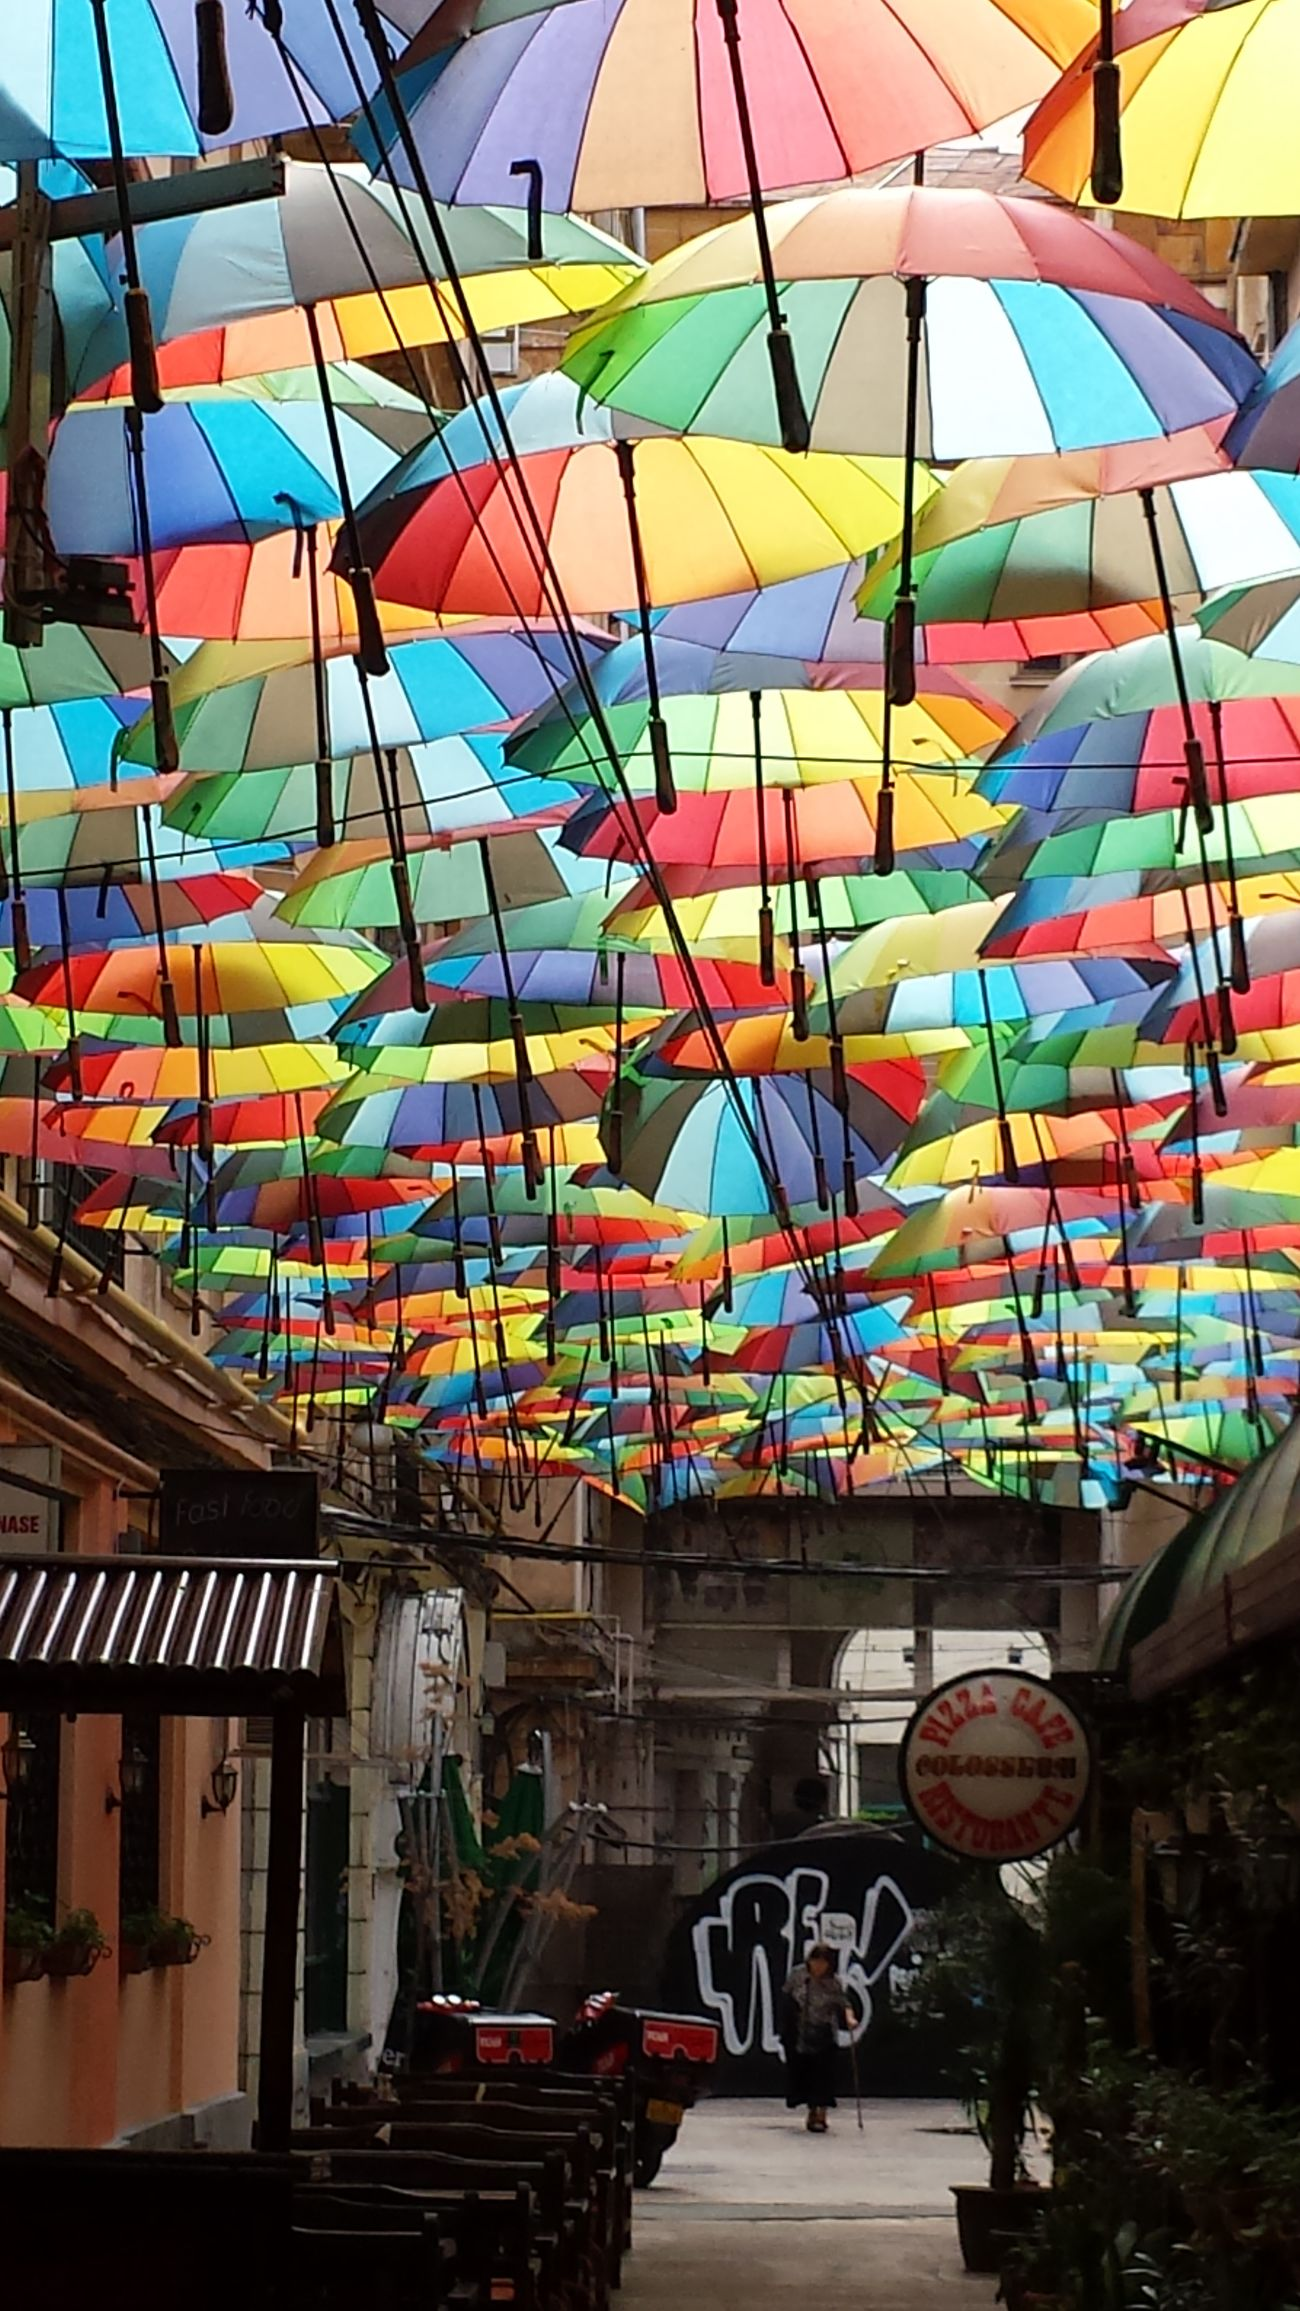 Architecture Citylife Day Multi Colored Outdoors Sky Umbrellastreet First Eyeem Photo